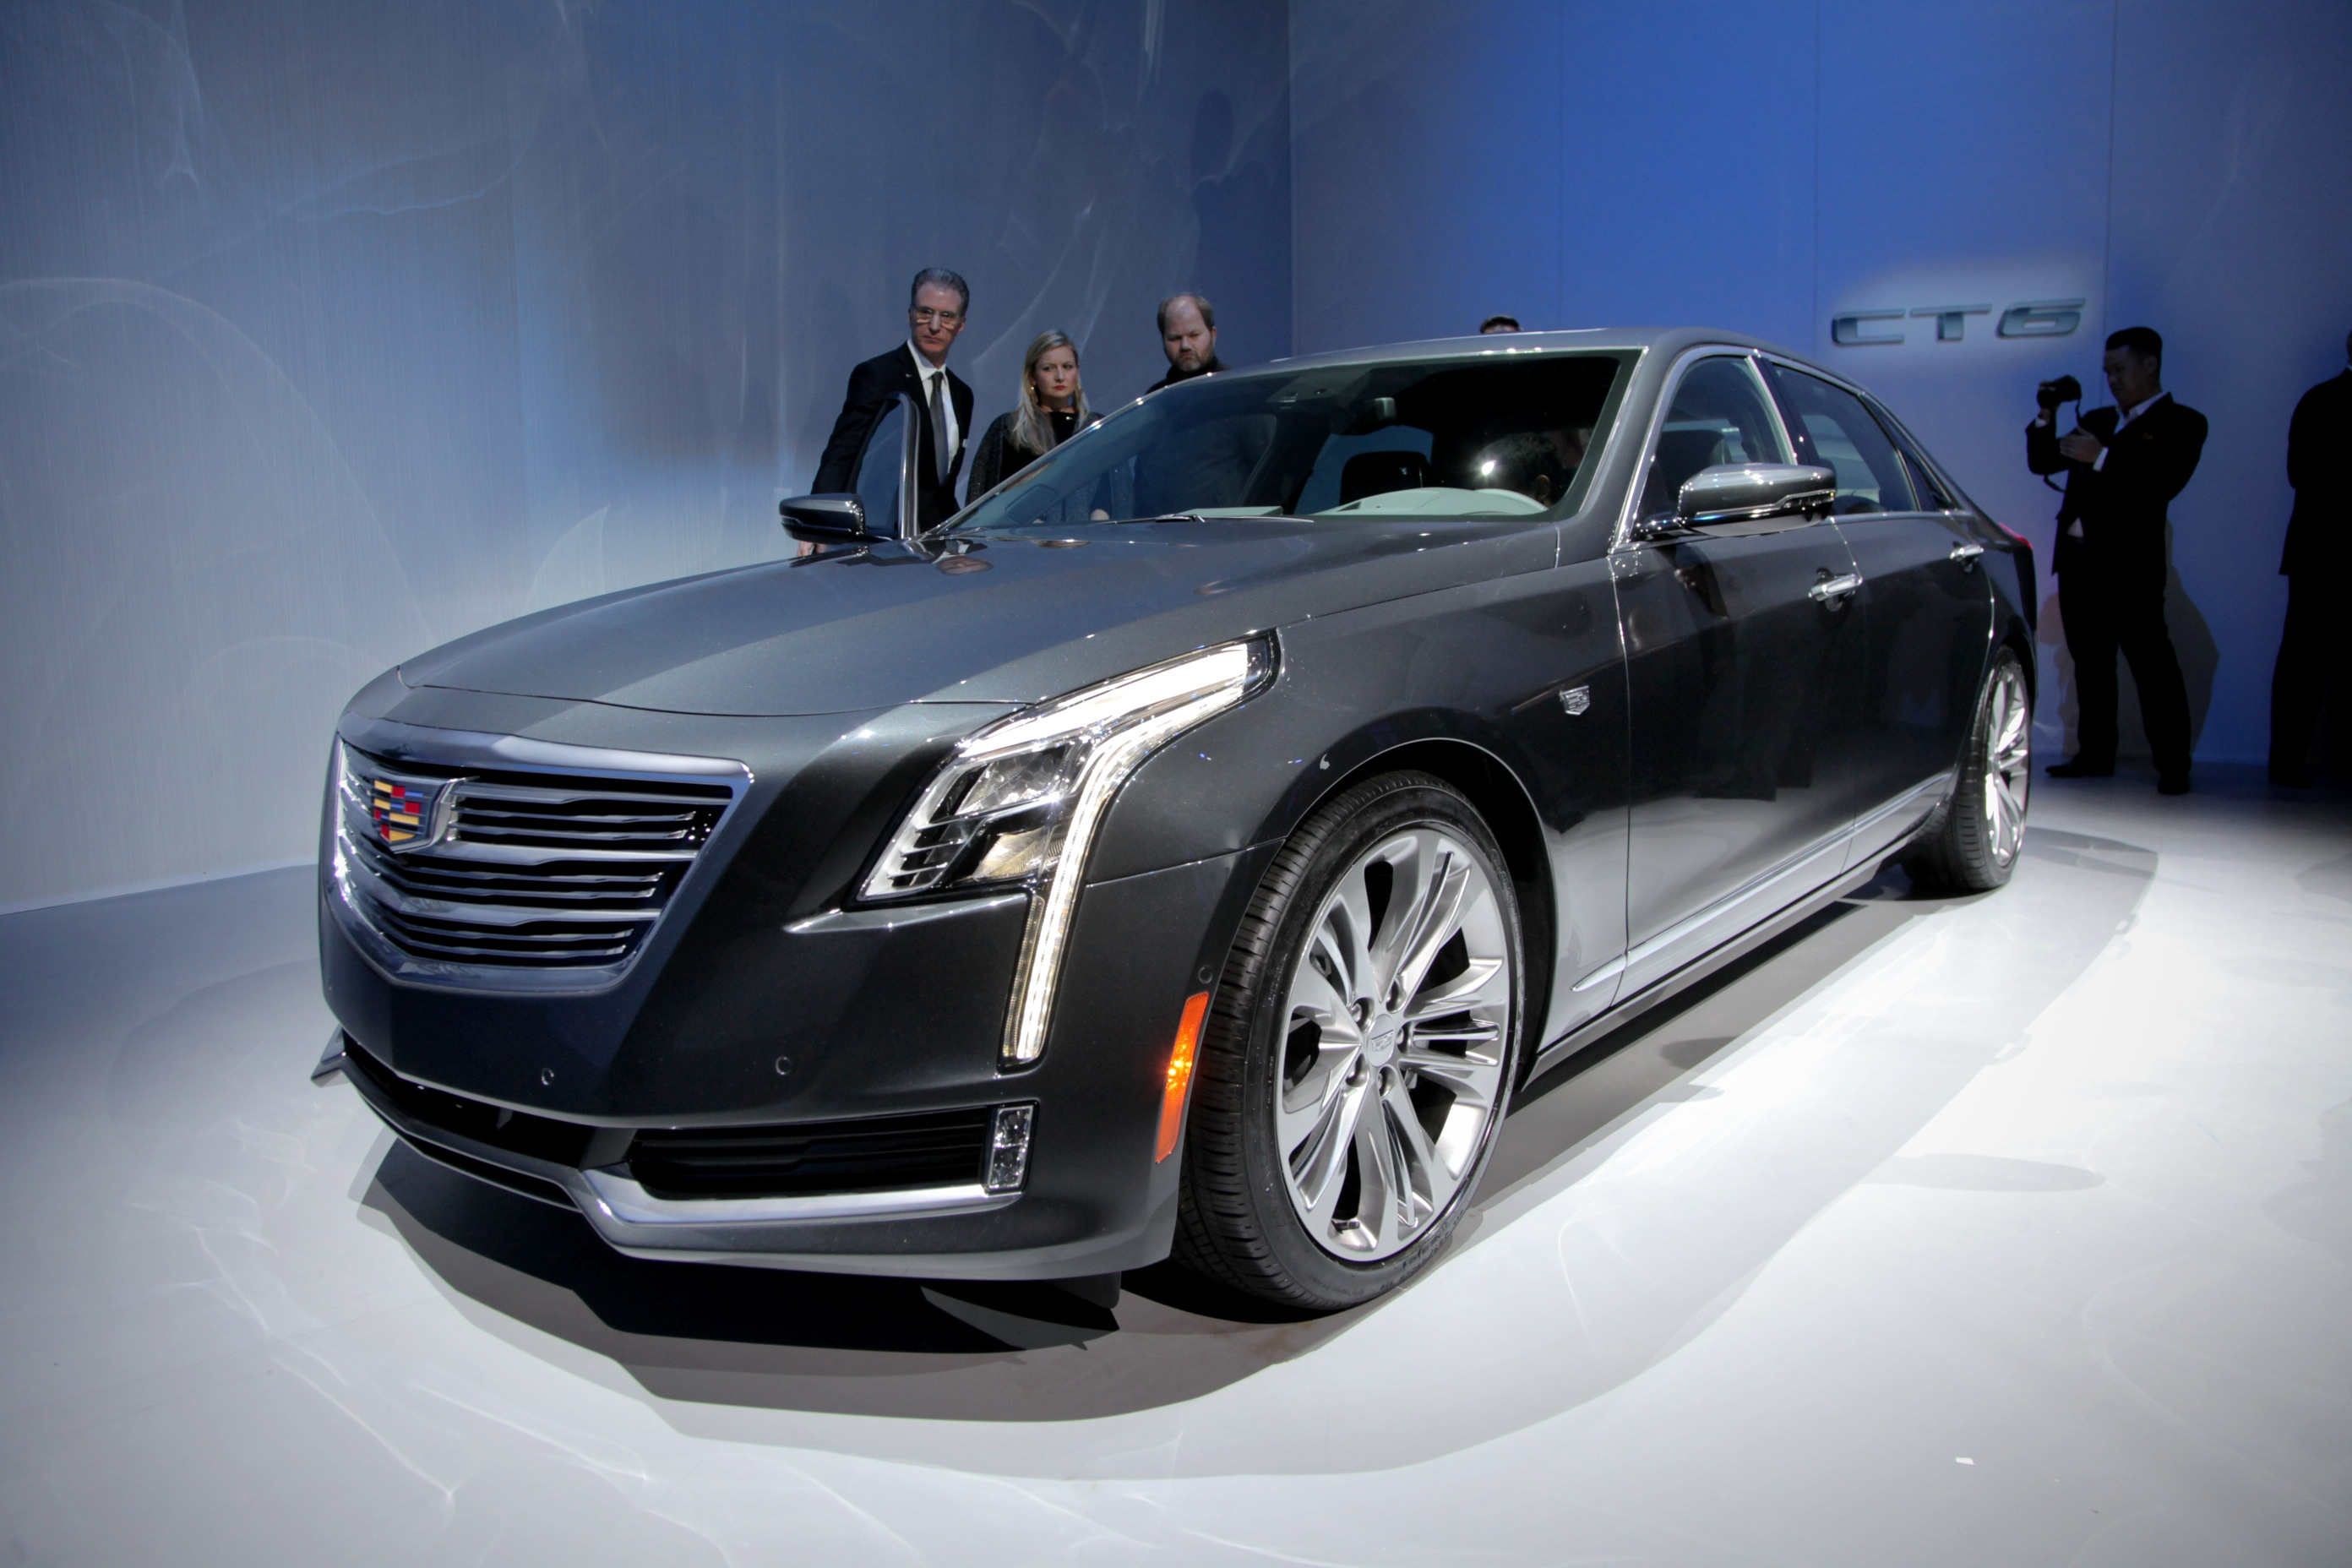 Cadillac CT6 Plug-In Hybrid to Bow in Late April